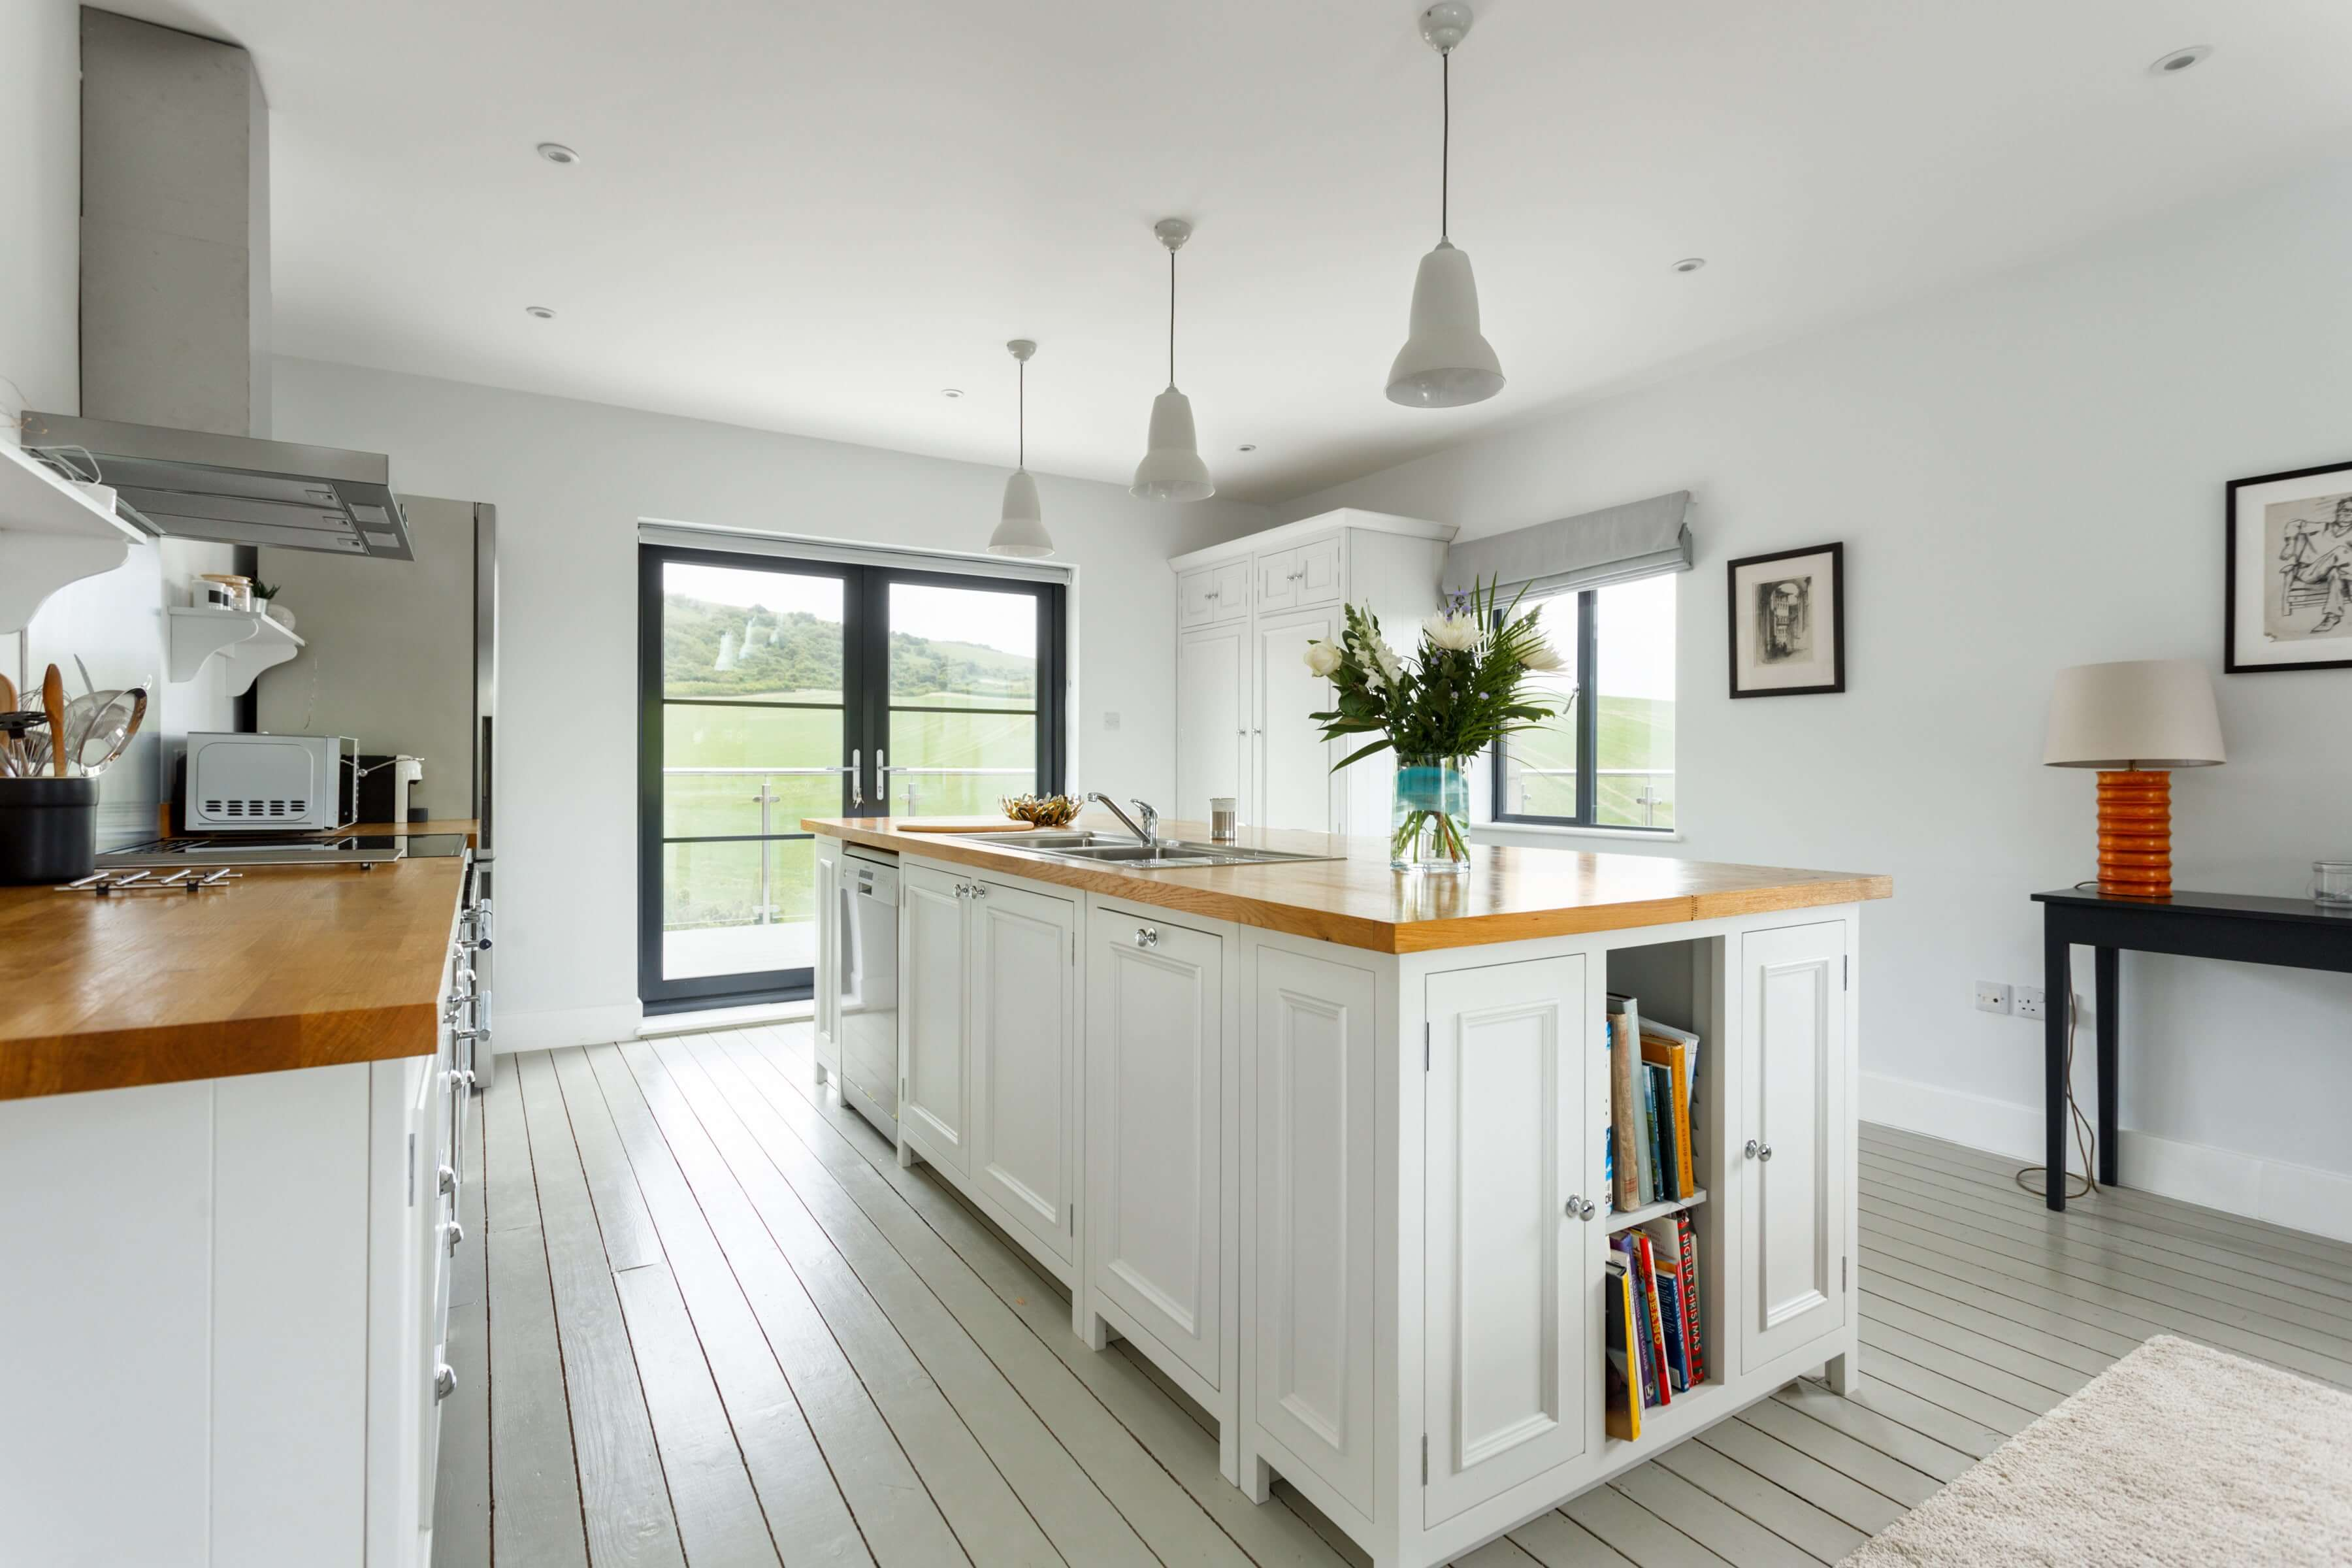 Luxury kitchen in a Dorset Cottage